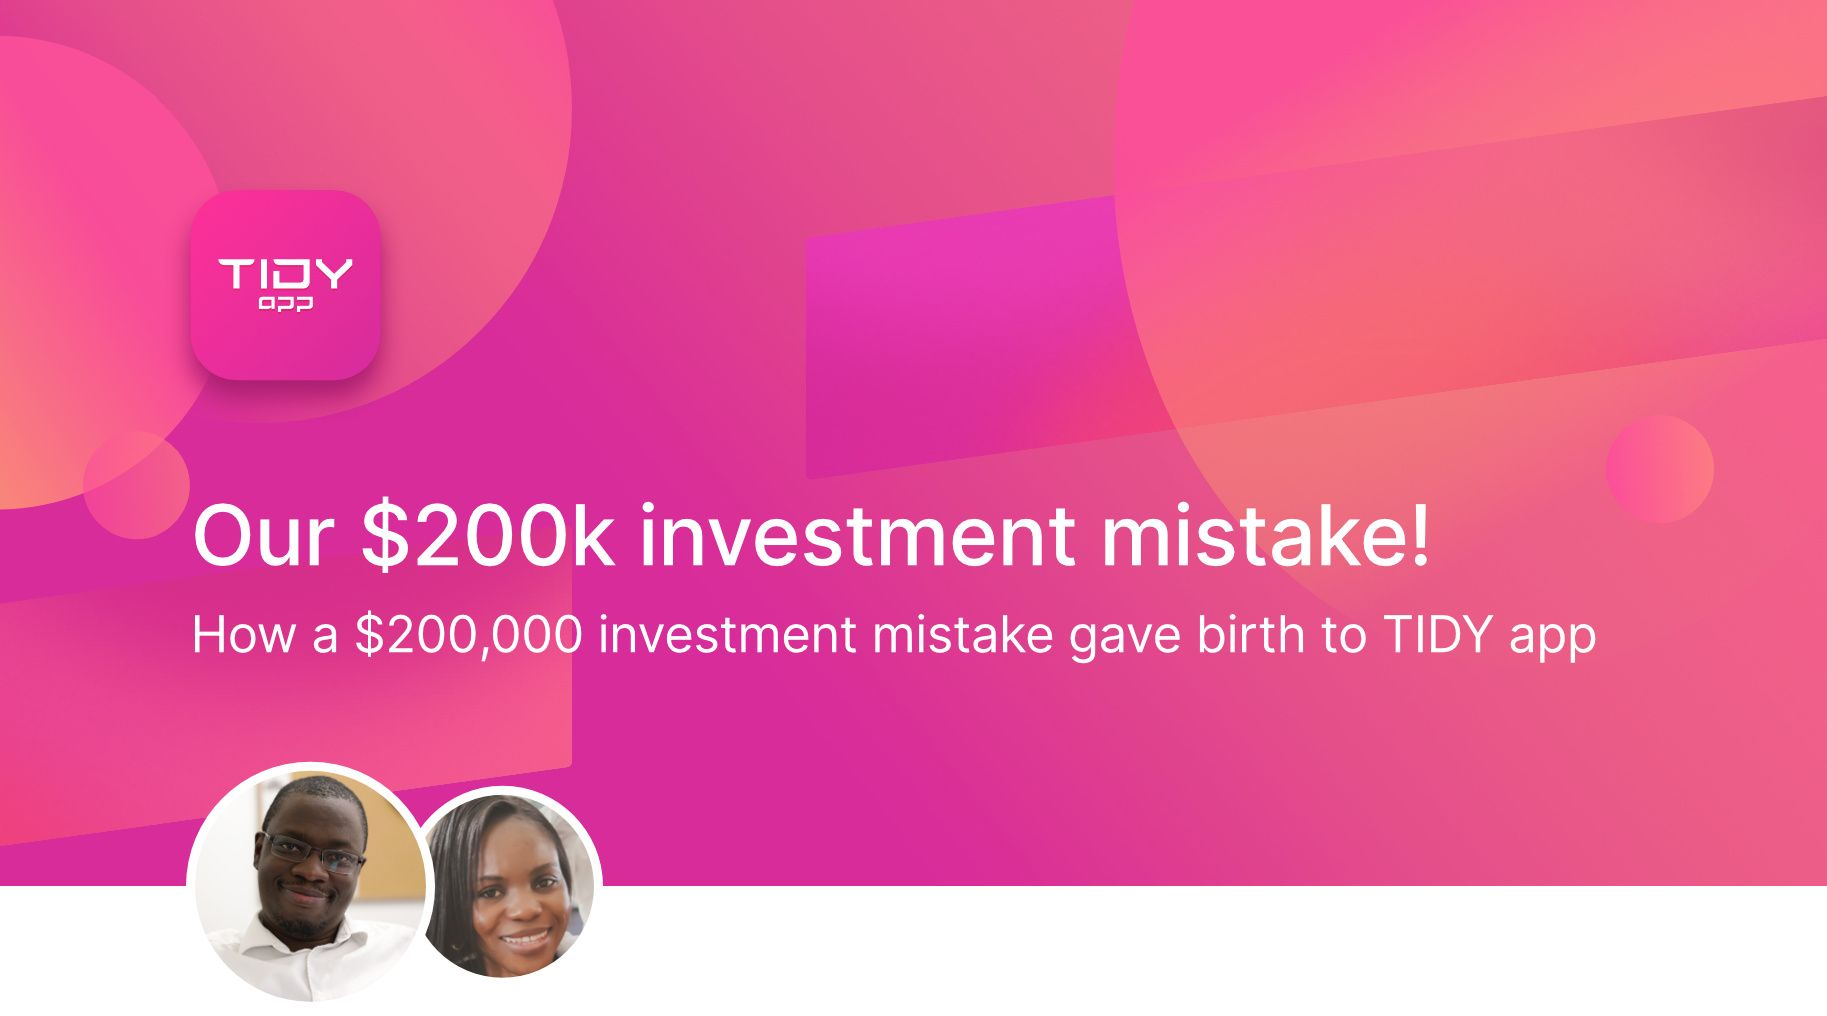 Our $200k investment mistake!